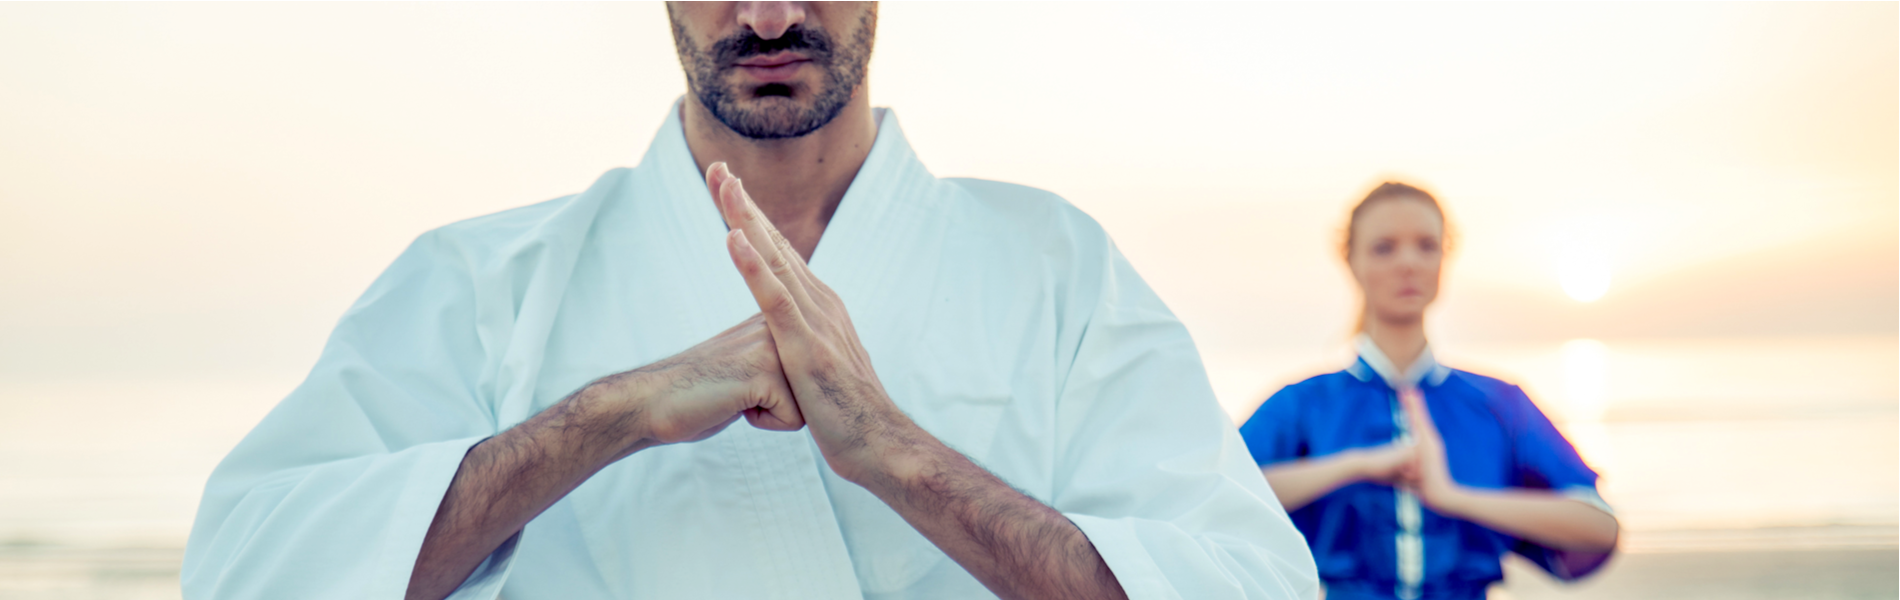 How to Build Business Partnerships for Your Martial Arts School